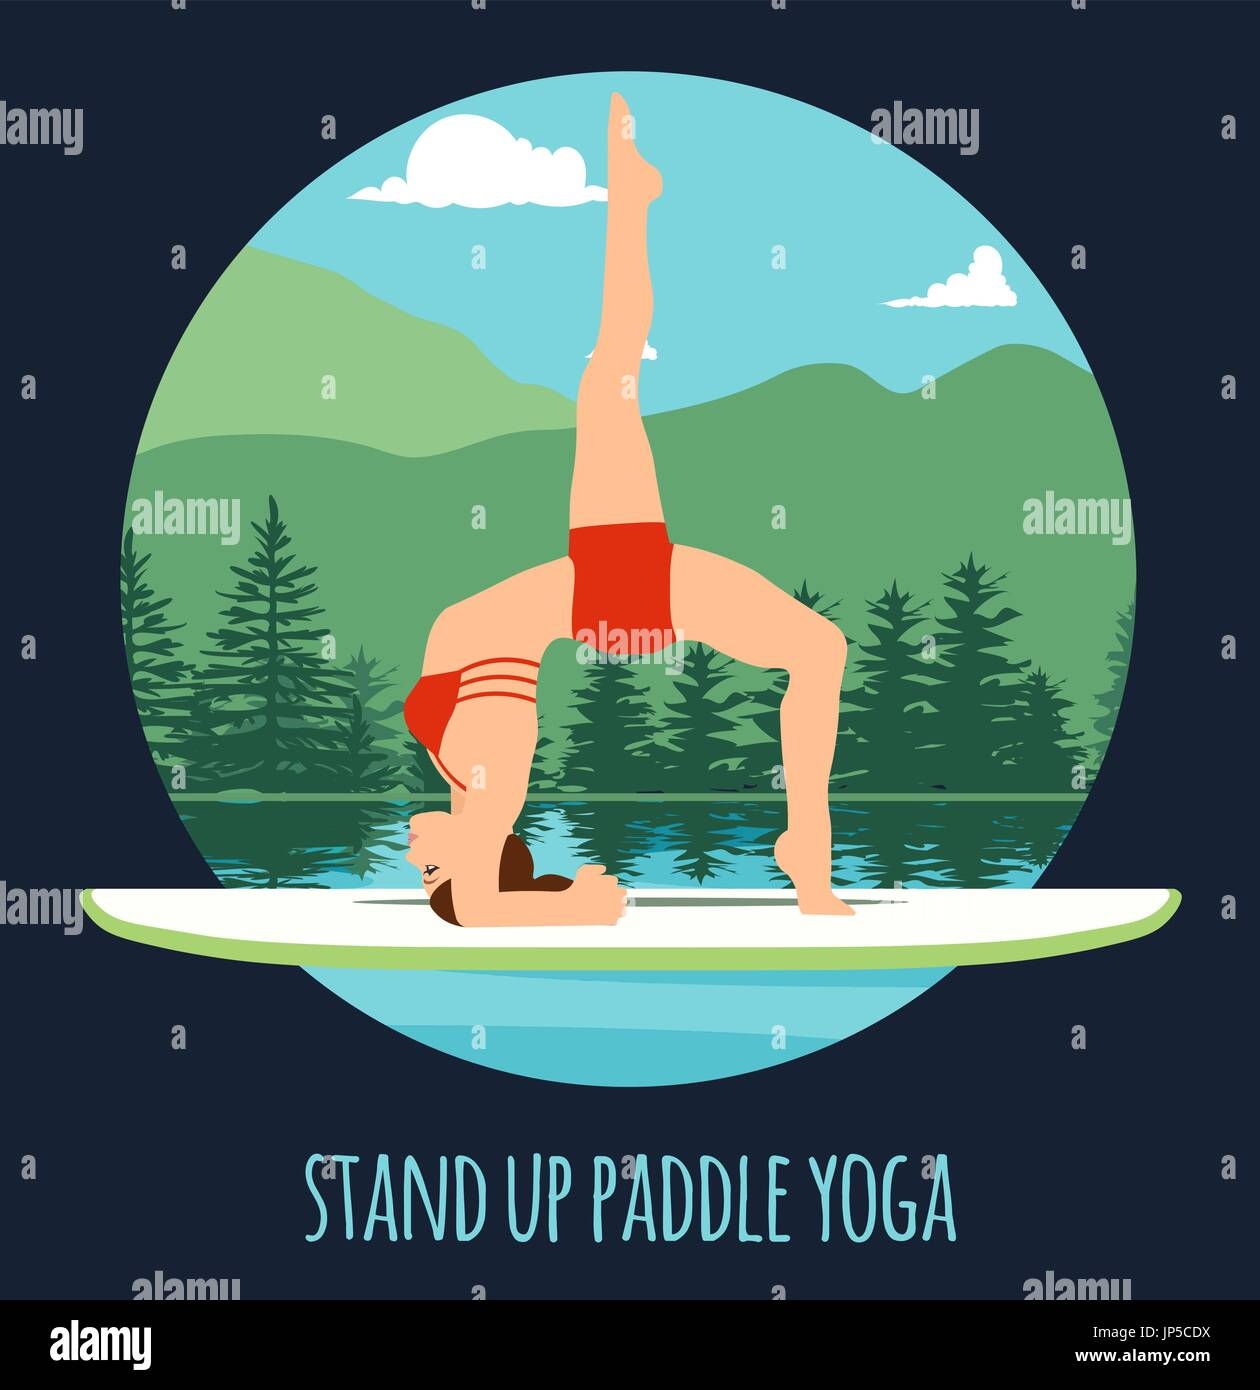 Woman doing Stand Up Paddling Yoga on Paddle Board on Water at lake Mountain landscape Stand Up Paddle Yoga Workout - Stock Vector